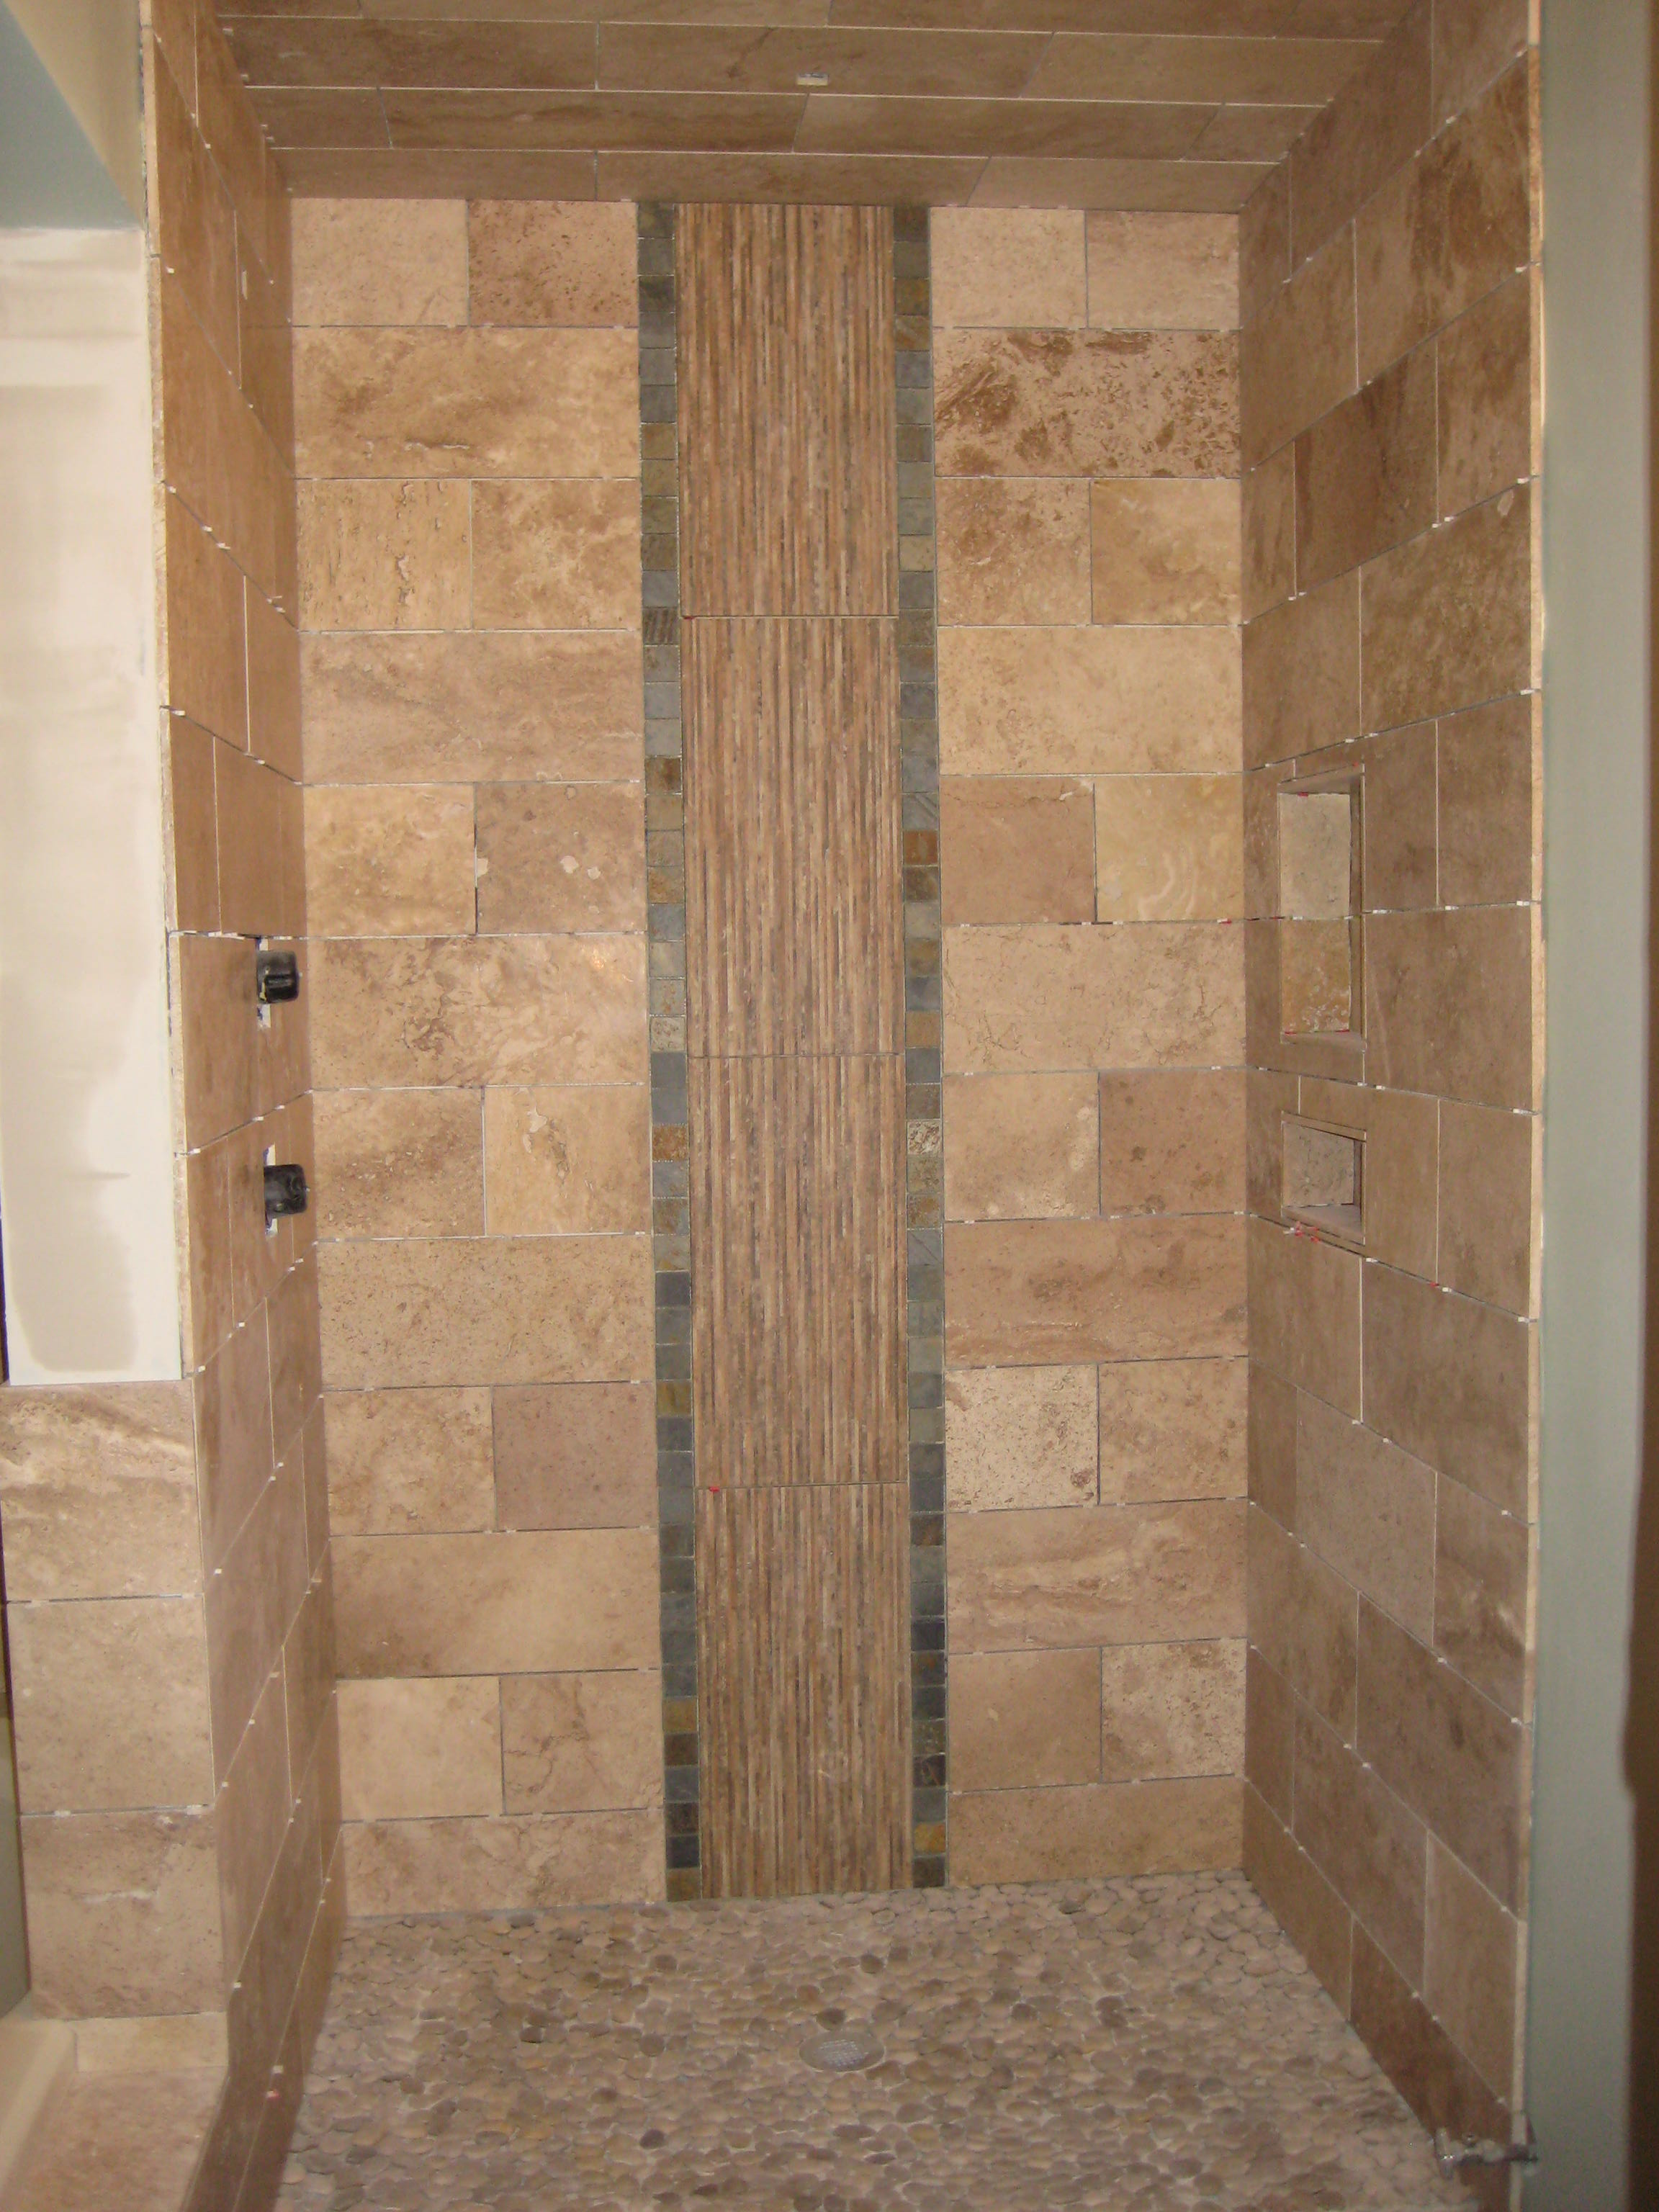 Natural-Stone-Patterns-for-Tile-Shower-Designs-in-Minimalist-Bathroom-Image